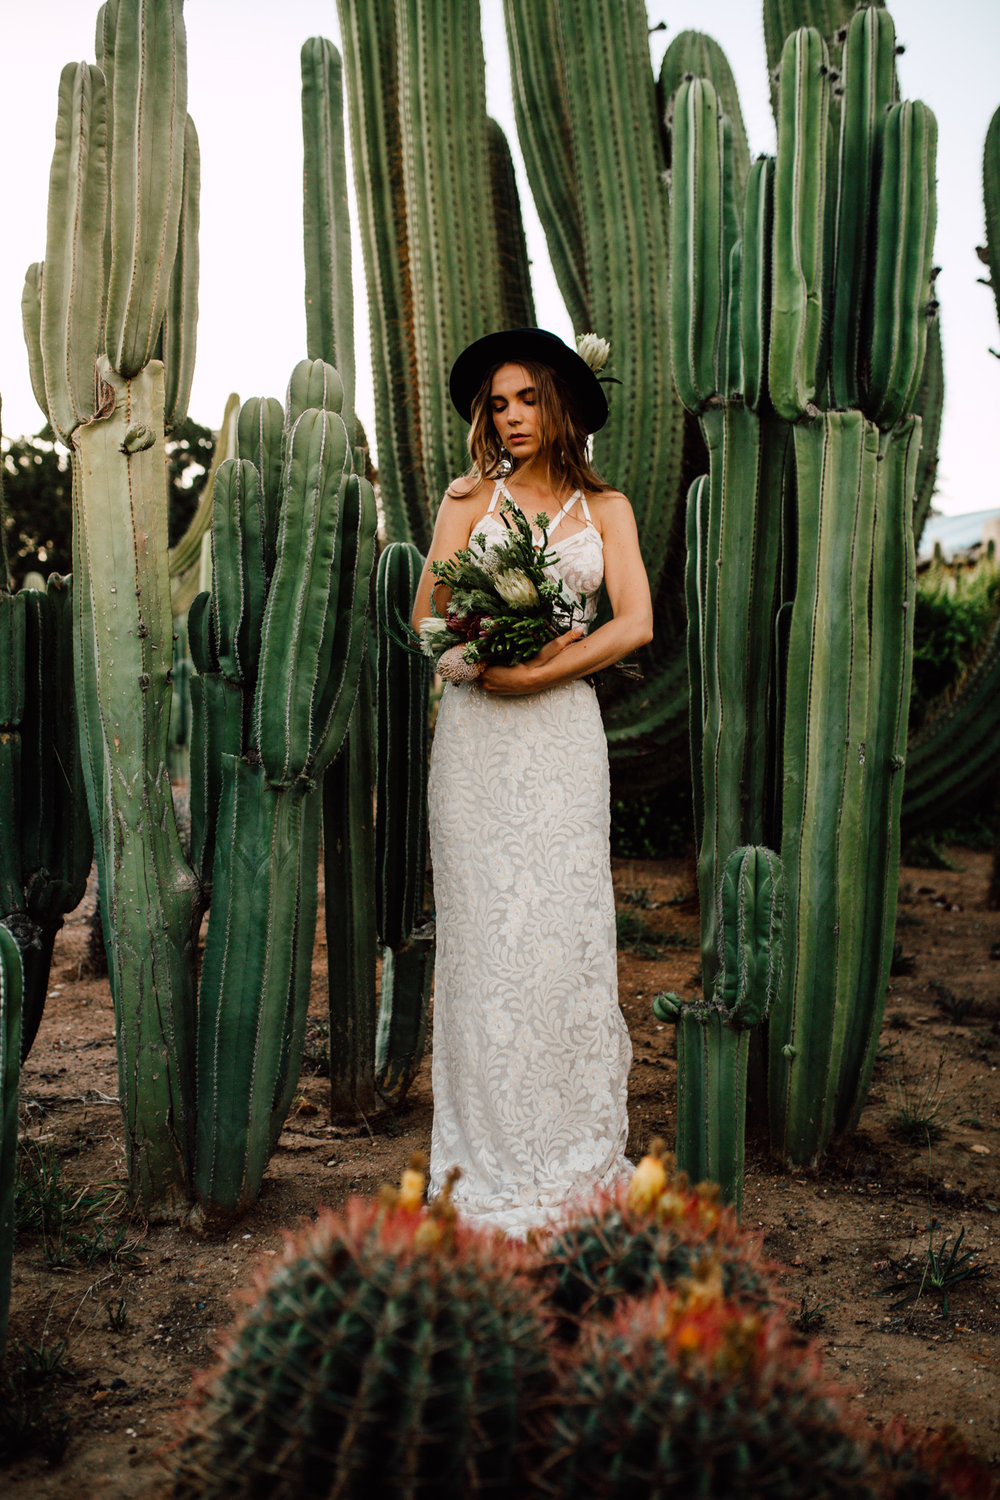 Cape-Town-Pia-Anna-Christian-Wedding-Photography-South-Africa-Bride-Cactus-29.jpg